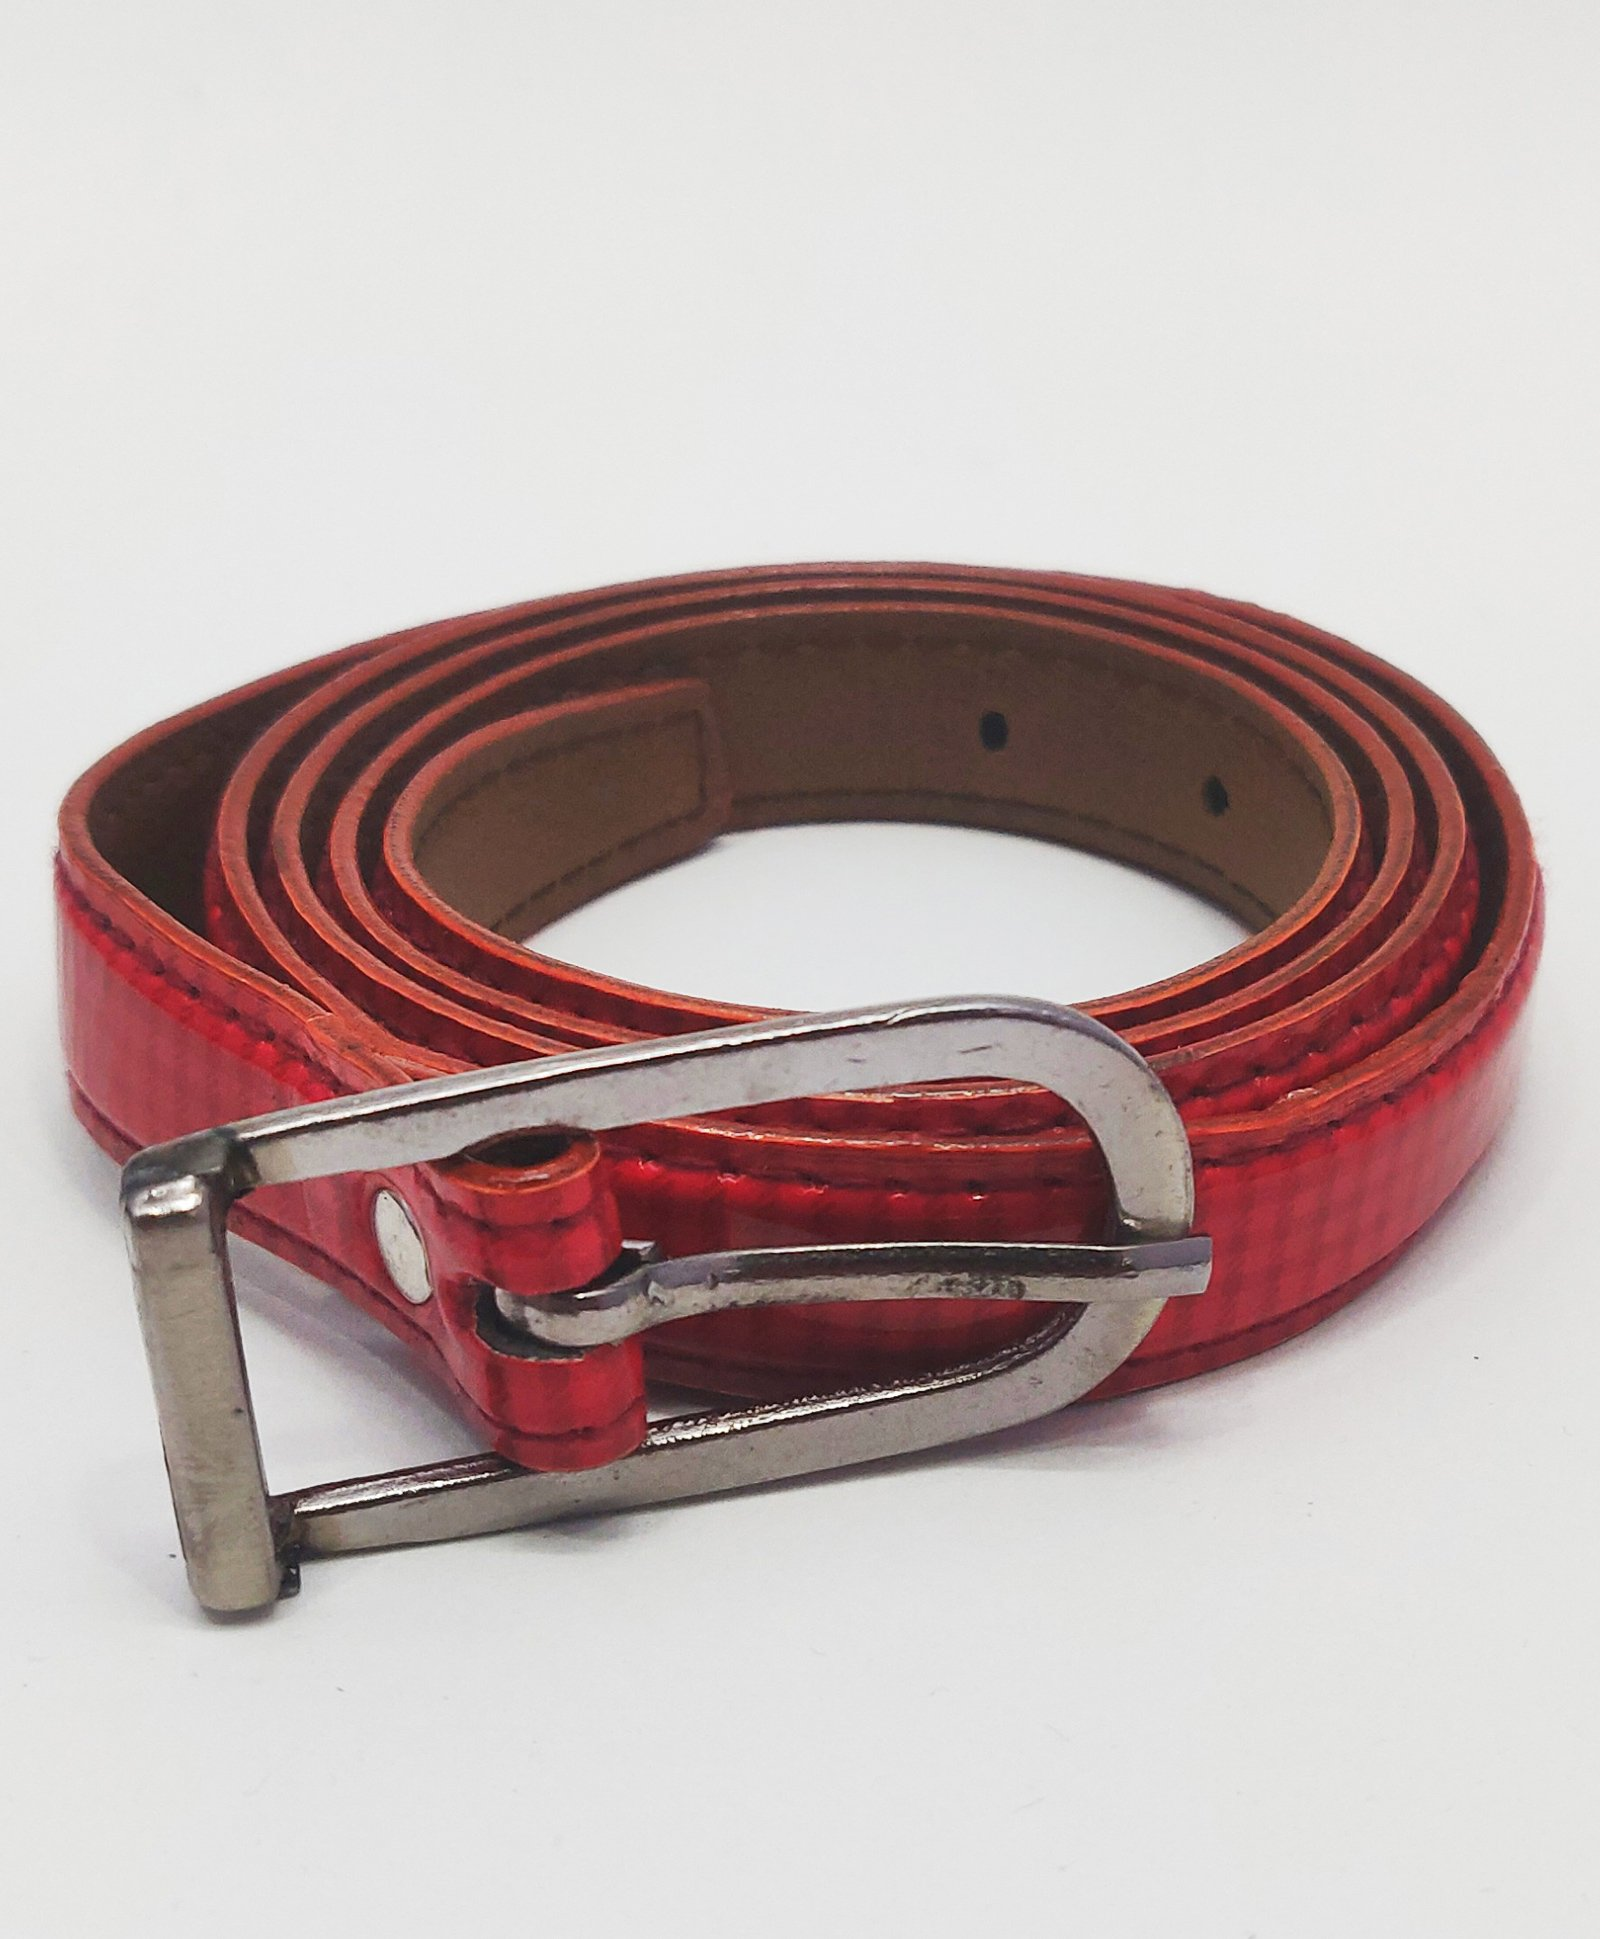 db3ffda9794 Buy KidOWorld Checked Belt Red (5-12 Years) Online in India, Shop at  FirstCry.com - 2743259